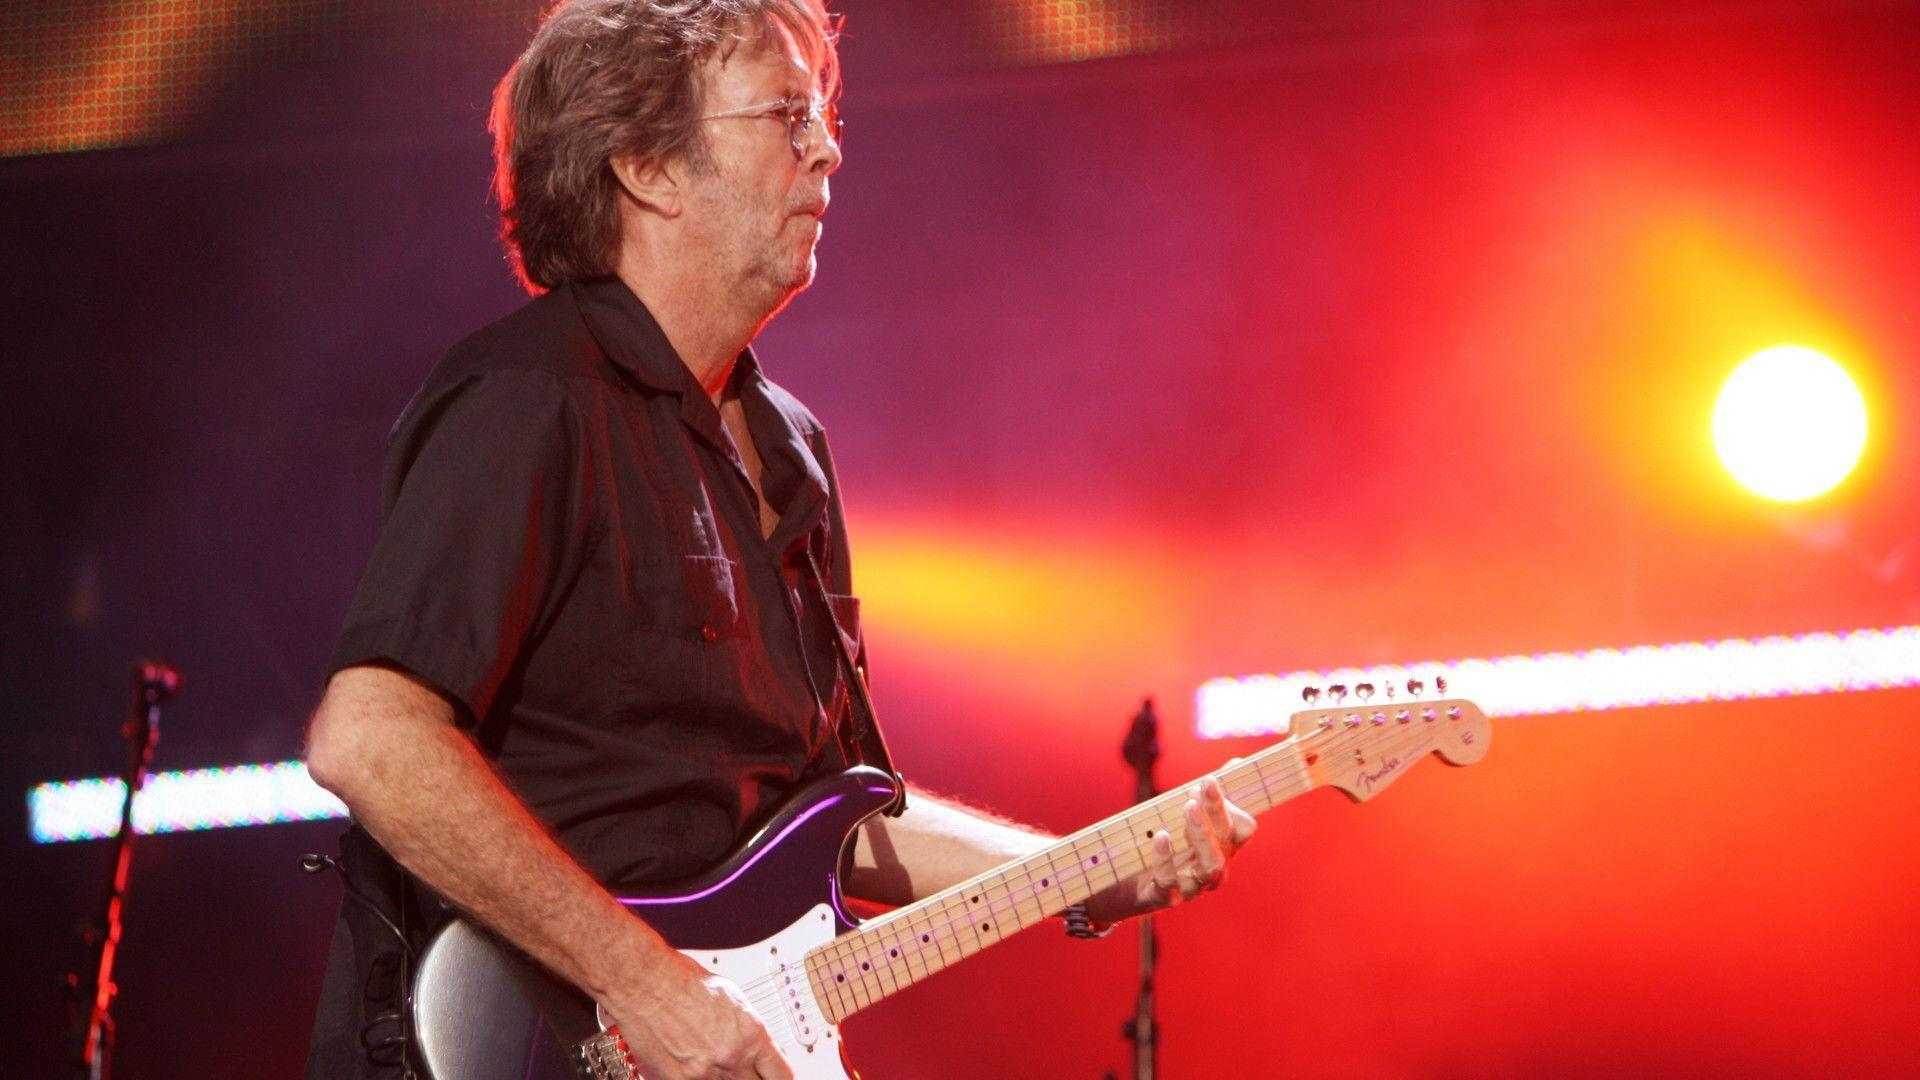 9 Eric Clapton Wallpapers